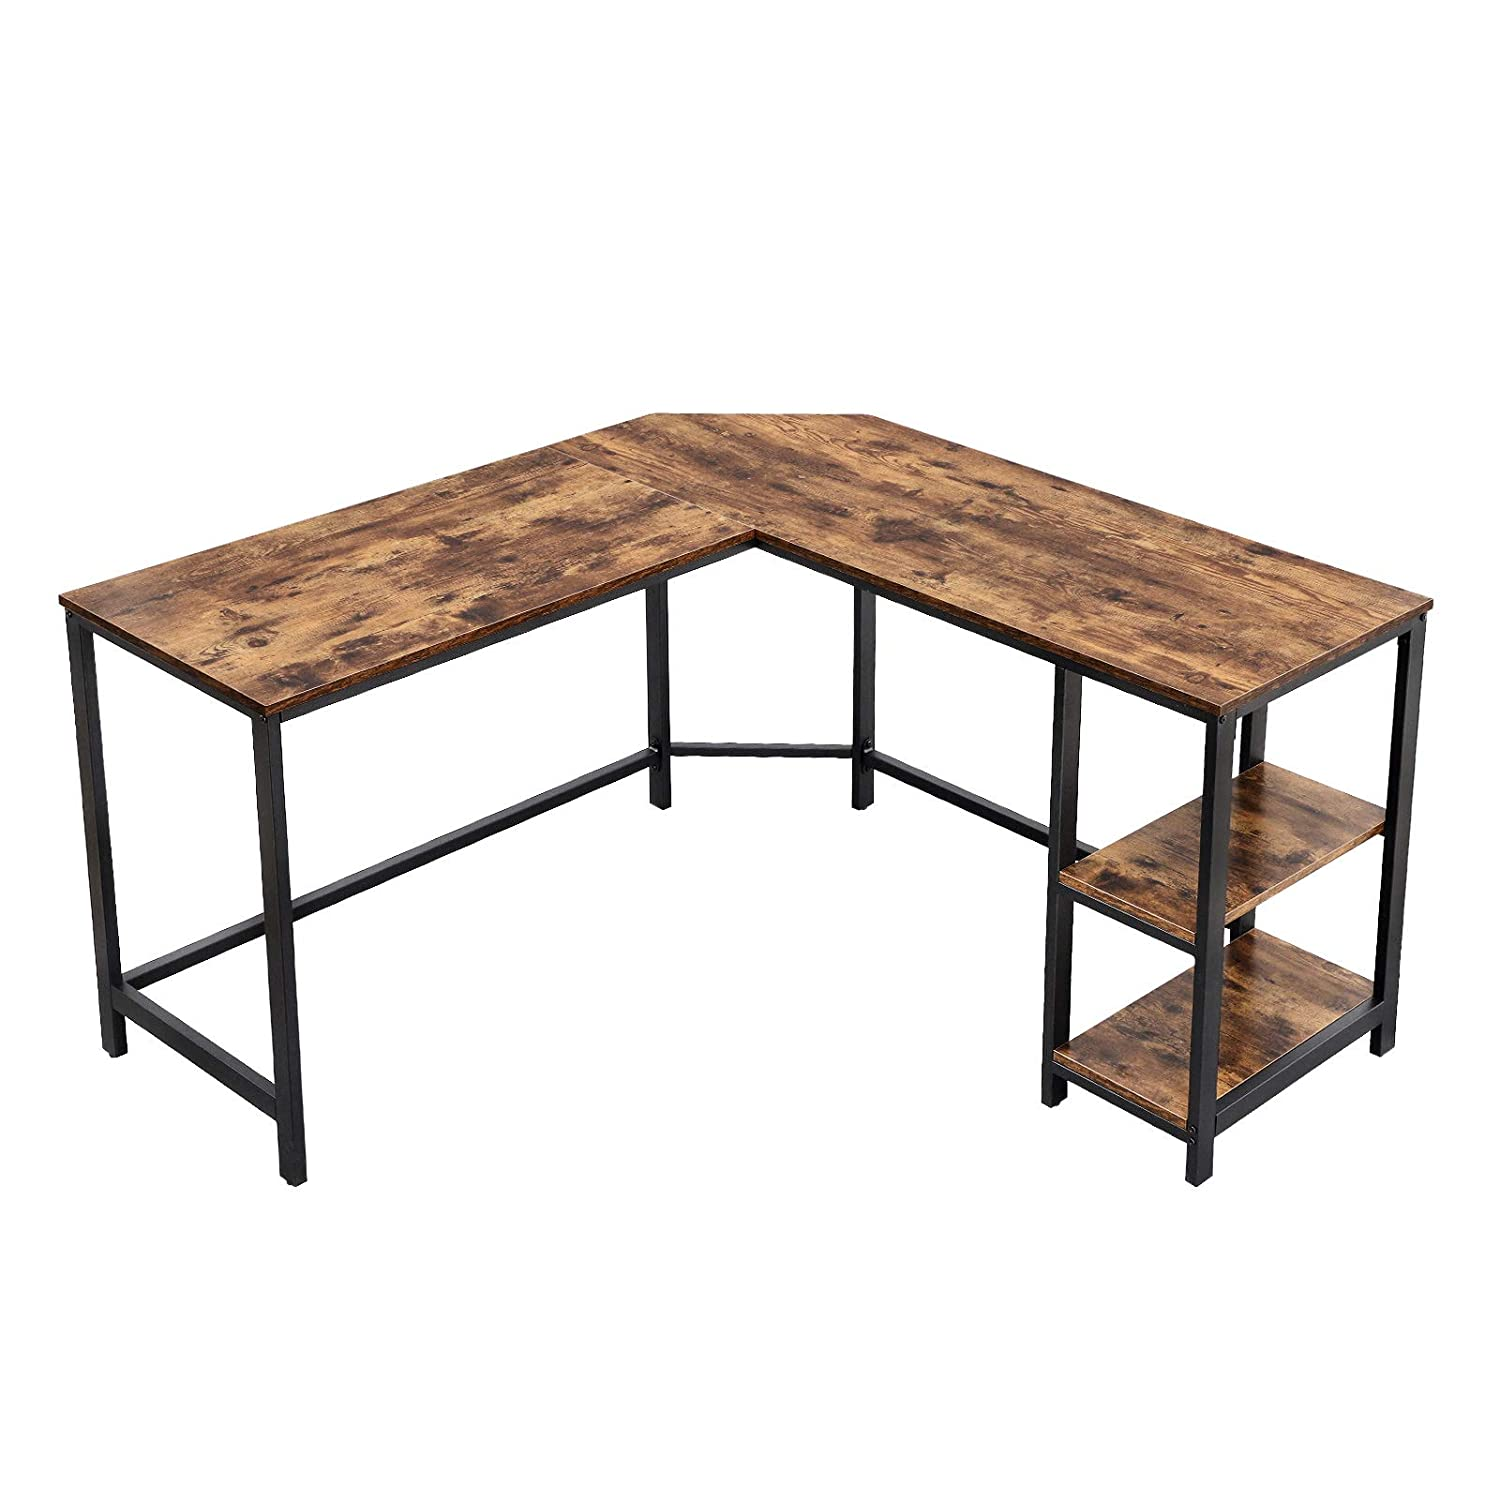 VASAGLE Computer Corner Desk, L-Shaped Writing Workstation, Gaming Desk with Shelf for Home Office, Space-Saving, Easy to Assemble, Rustic Brown